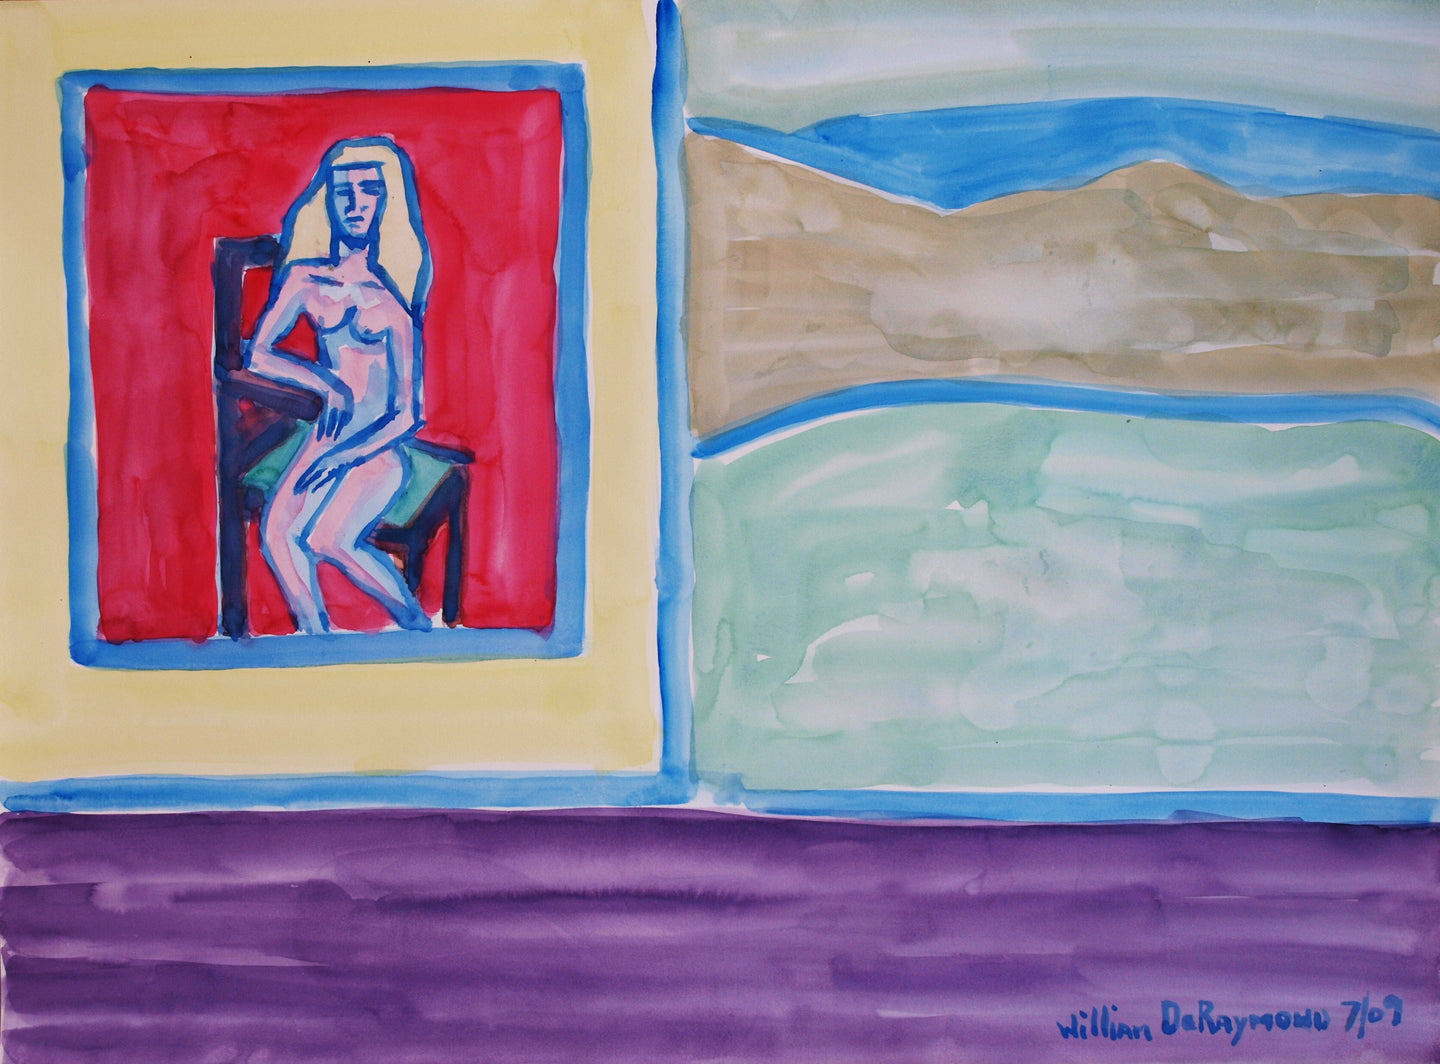 imaginary #watercolor #painting composition with figure #art, 22